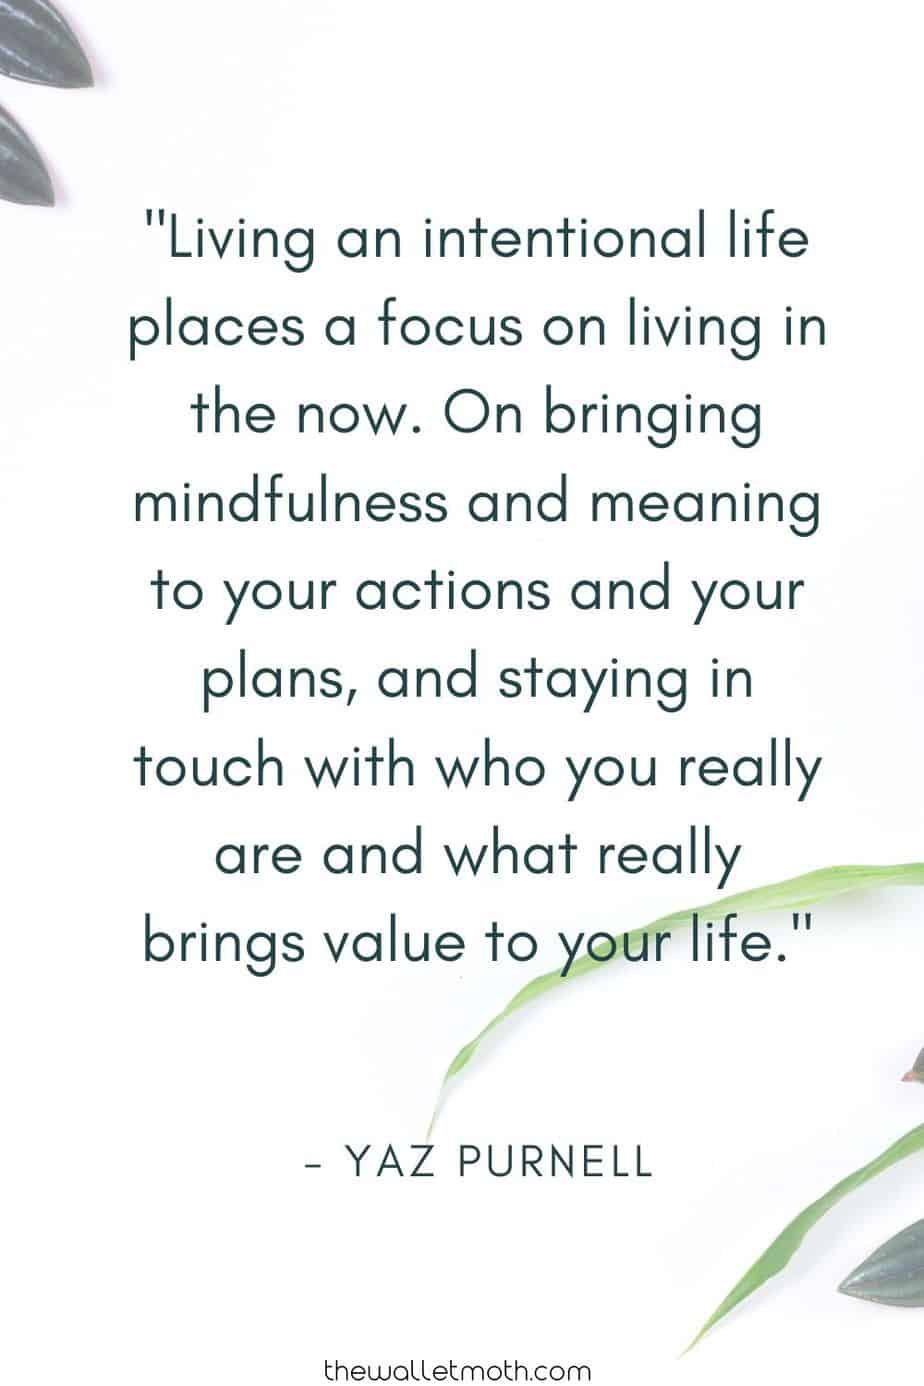 """Living an intentional life places a focus on living in the now. On bringing mindfulness and meaning to your actions and your plans, and staying in touch with who you really are and what really brings value to your life."" - The Wallet Moth"